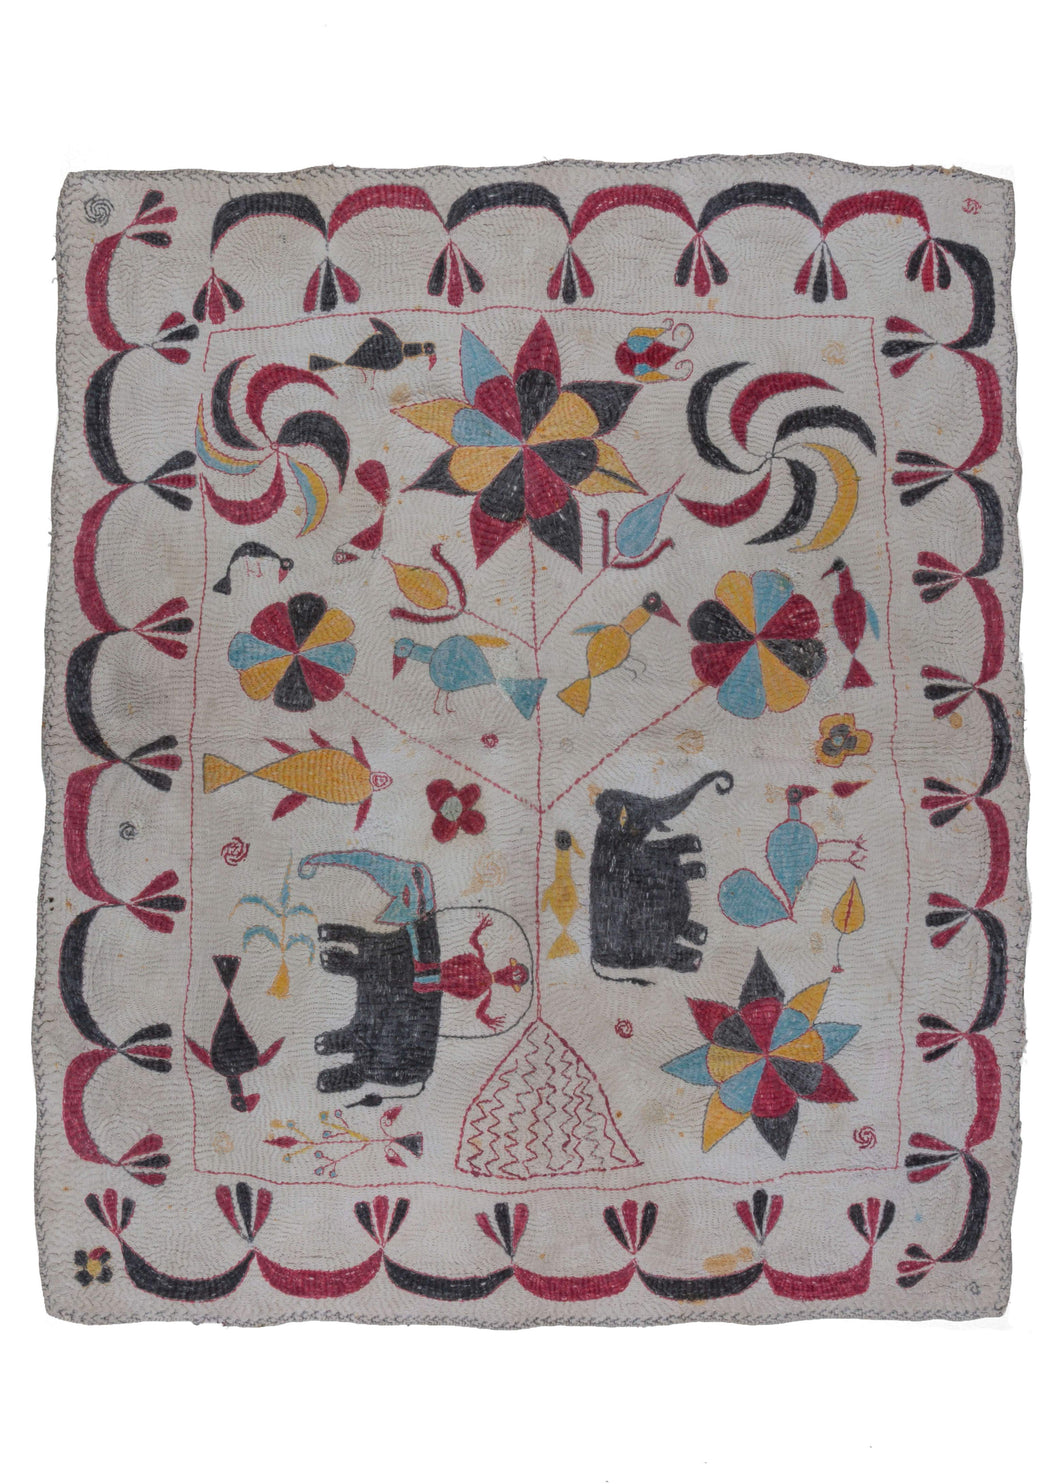 Antique Bengali hand embroidered Nakshi Kantha hand quilted textile with a tree of life motif and elephants and birds